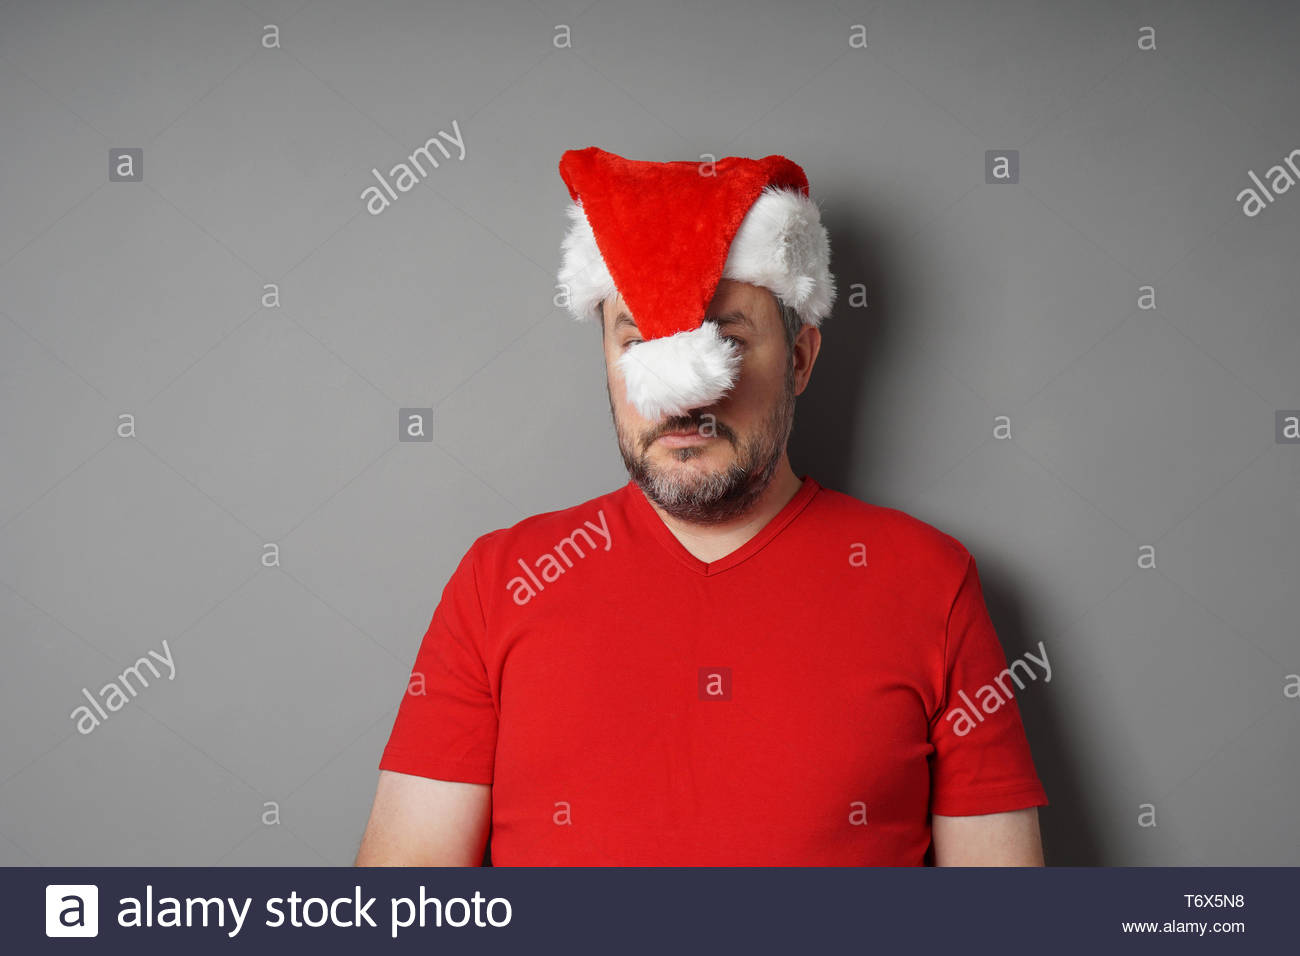 Christmas Hater.Christmas Hater Hiding Face Behind Santa Hat Stock Photo